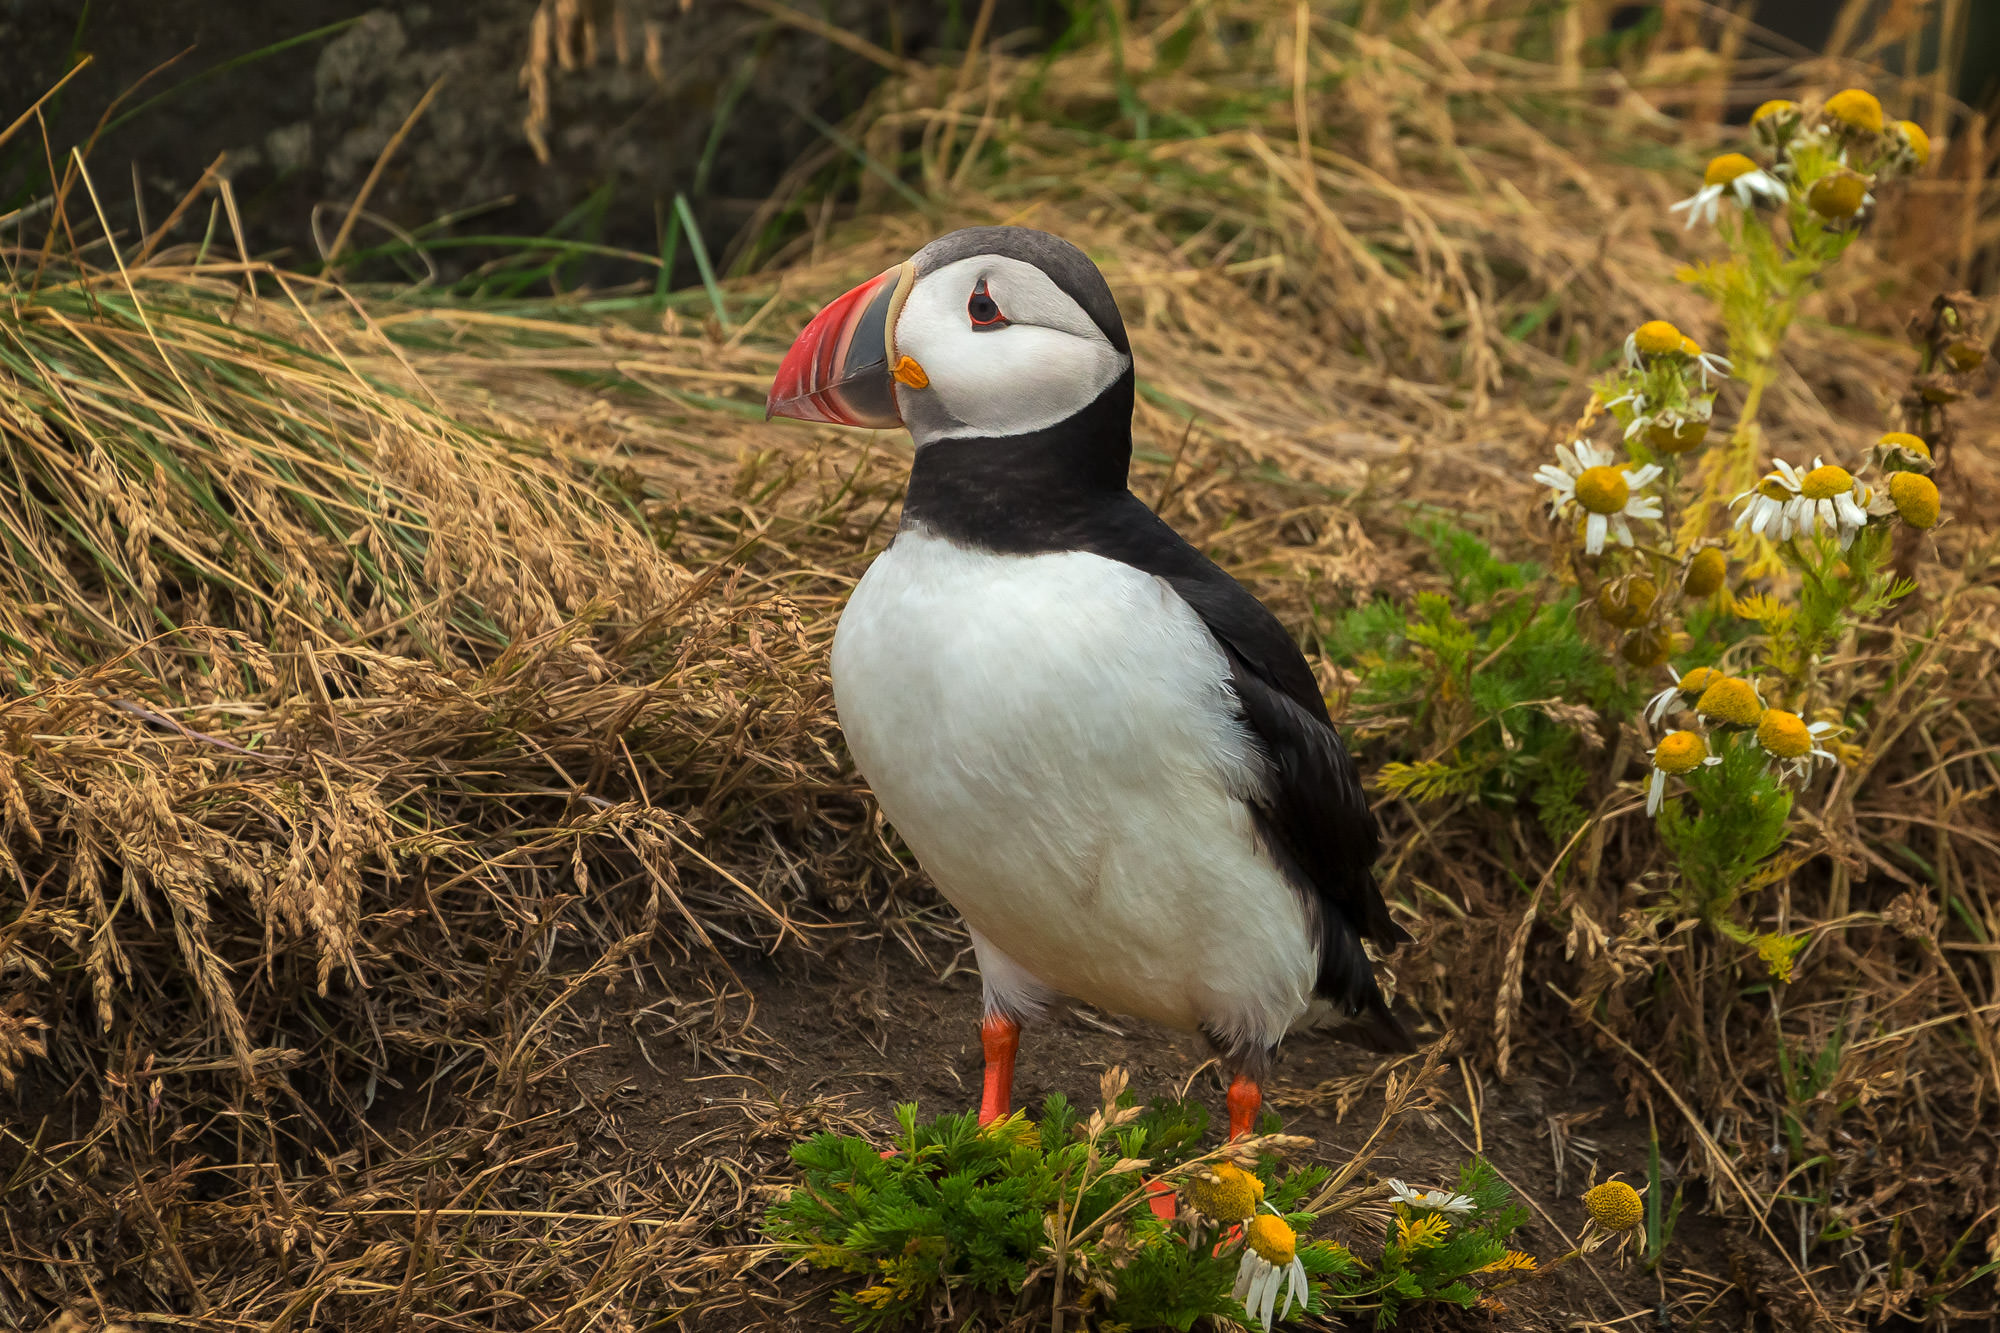 Puffin, Atlantic Puffin, Iceland, photo